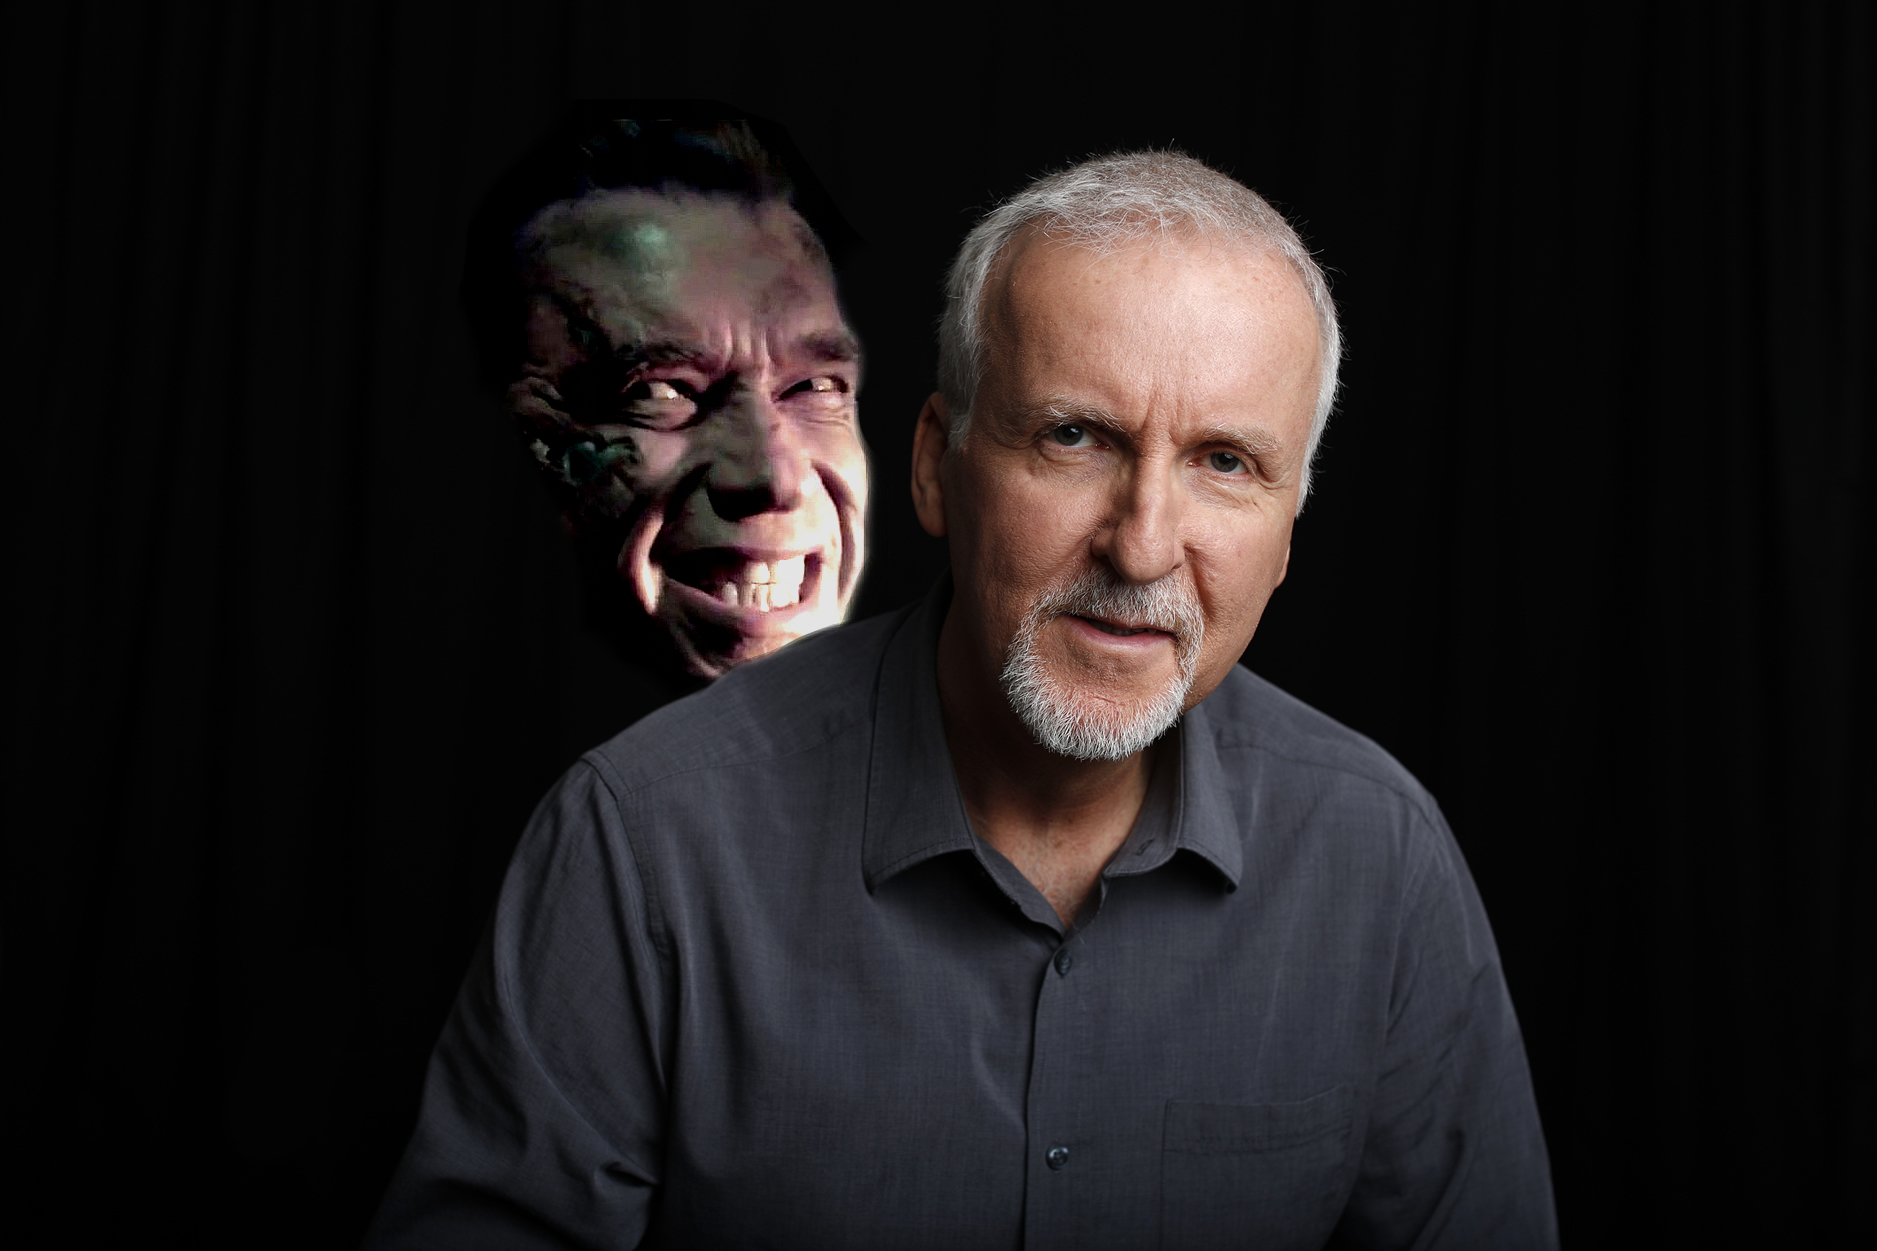 James Cameron Terminator Genisys Endorsement – The Real Truth